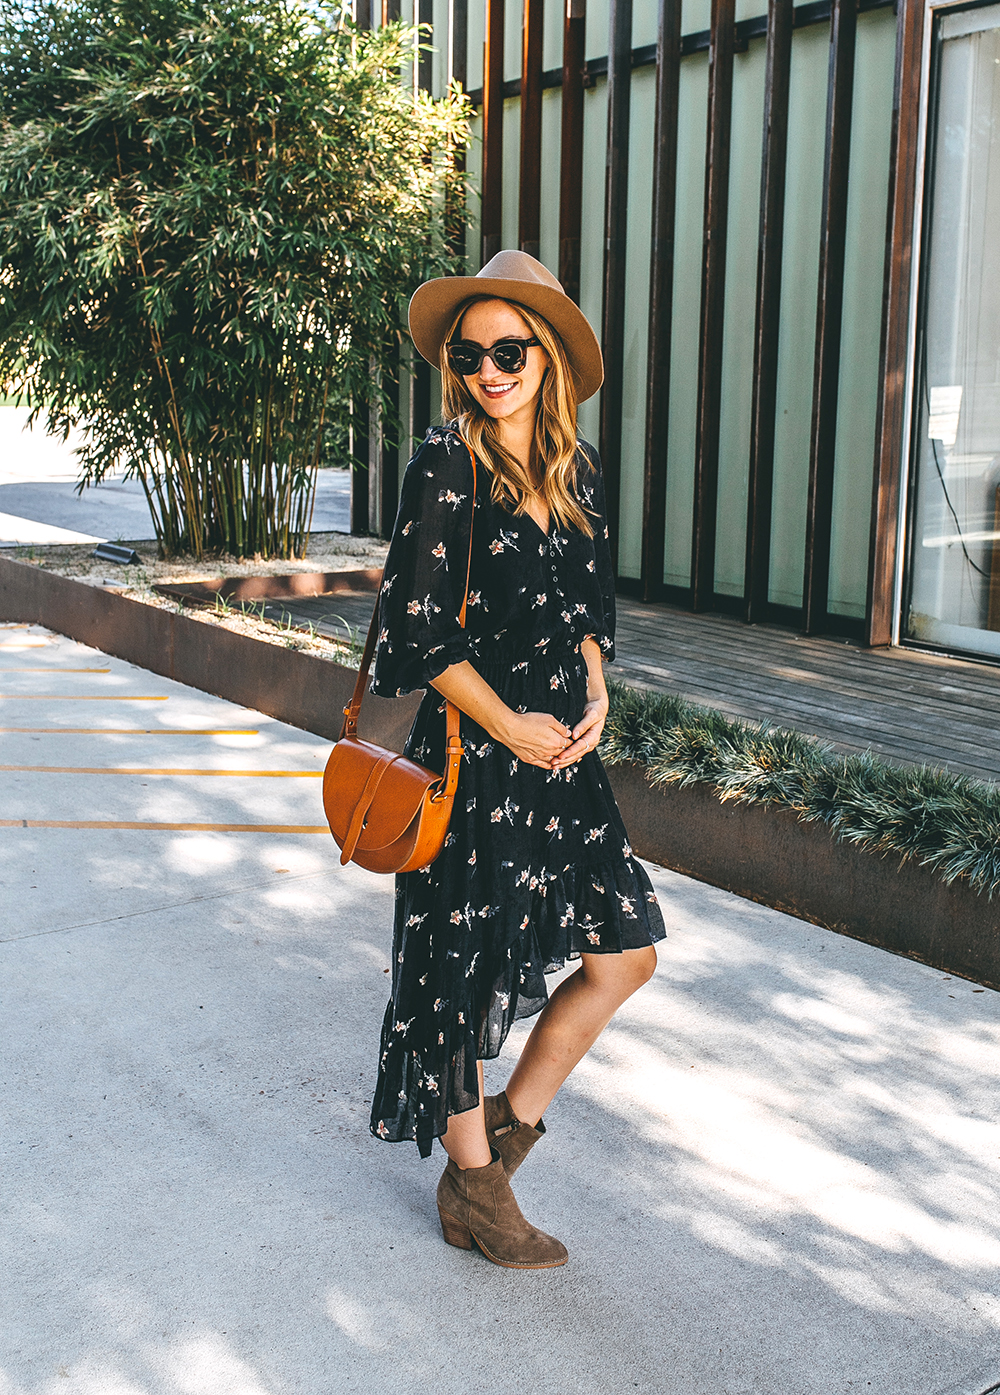 livvyland-blog-olivia-watson-austin-texas-fashion-blogger-domain-northside-joie-fall-dress-ankle-booties-outfit-6